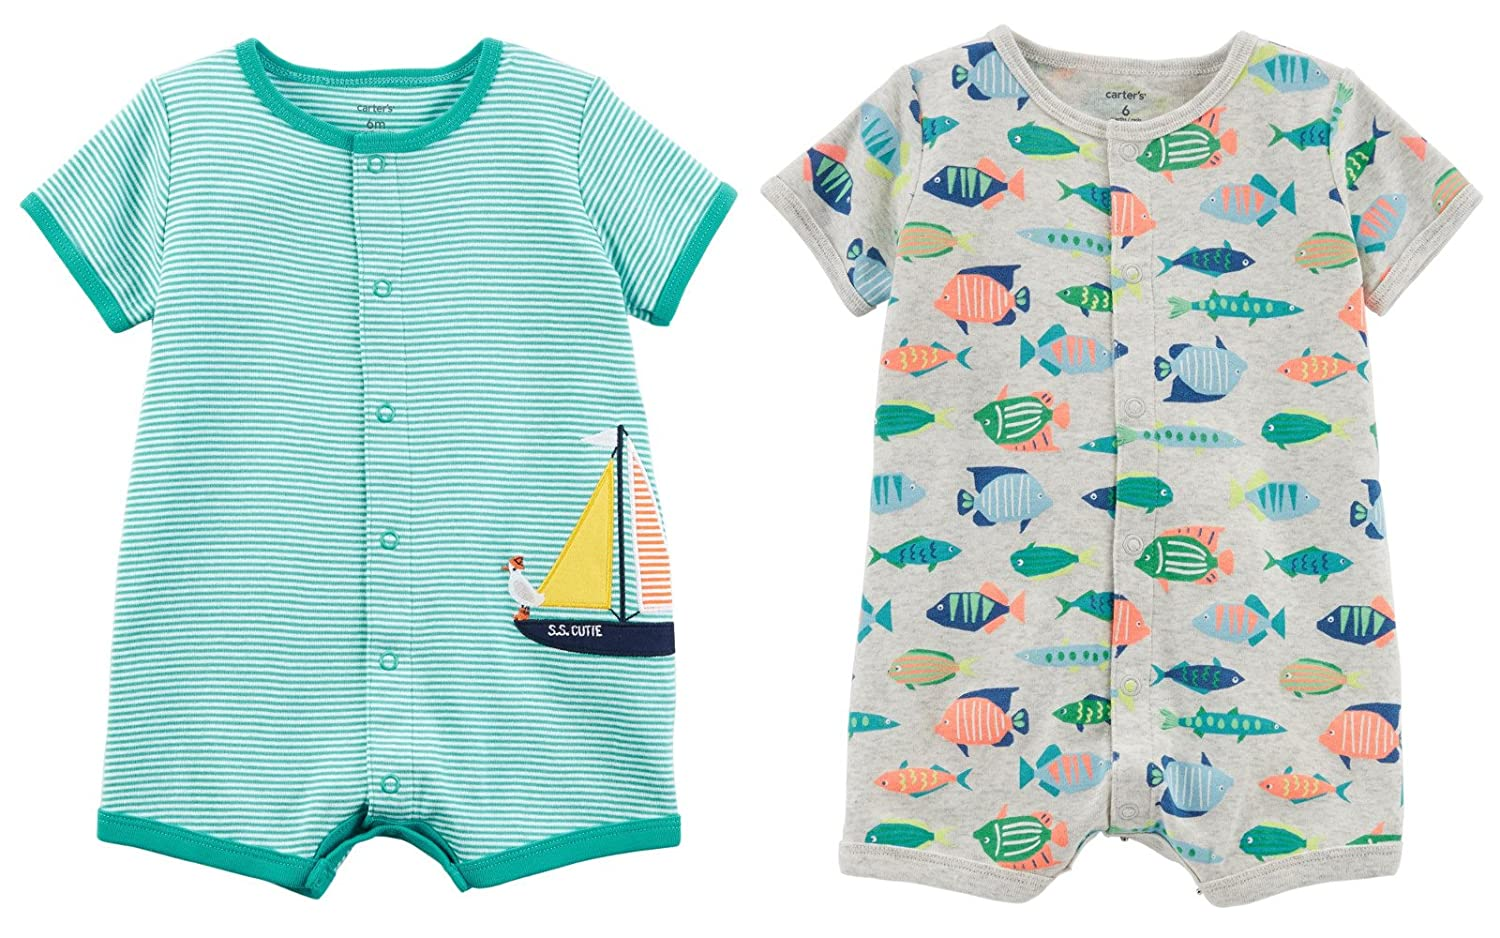 Carter's Baby Clothing SHIRT With ベビーボーイズ B07CRBRHRX Green SHIRT Stripe Sailboat Grey and Grey With Fish 3 Months 3 Months|Green Stripe Sailboat and Grey With Fish, KELLCH ケルヒジュエリーリペア:7b277a2f --- itxassou.fr